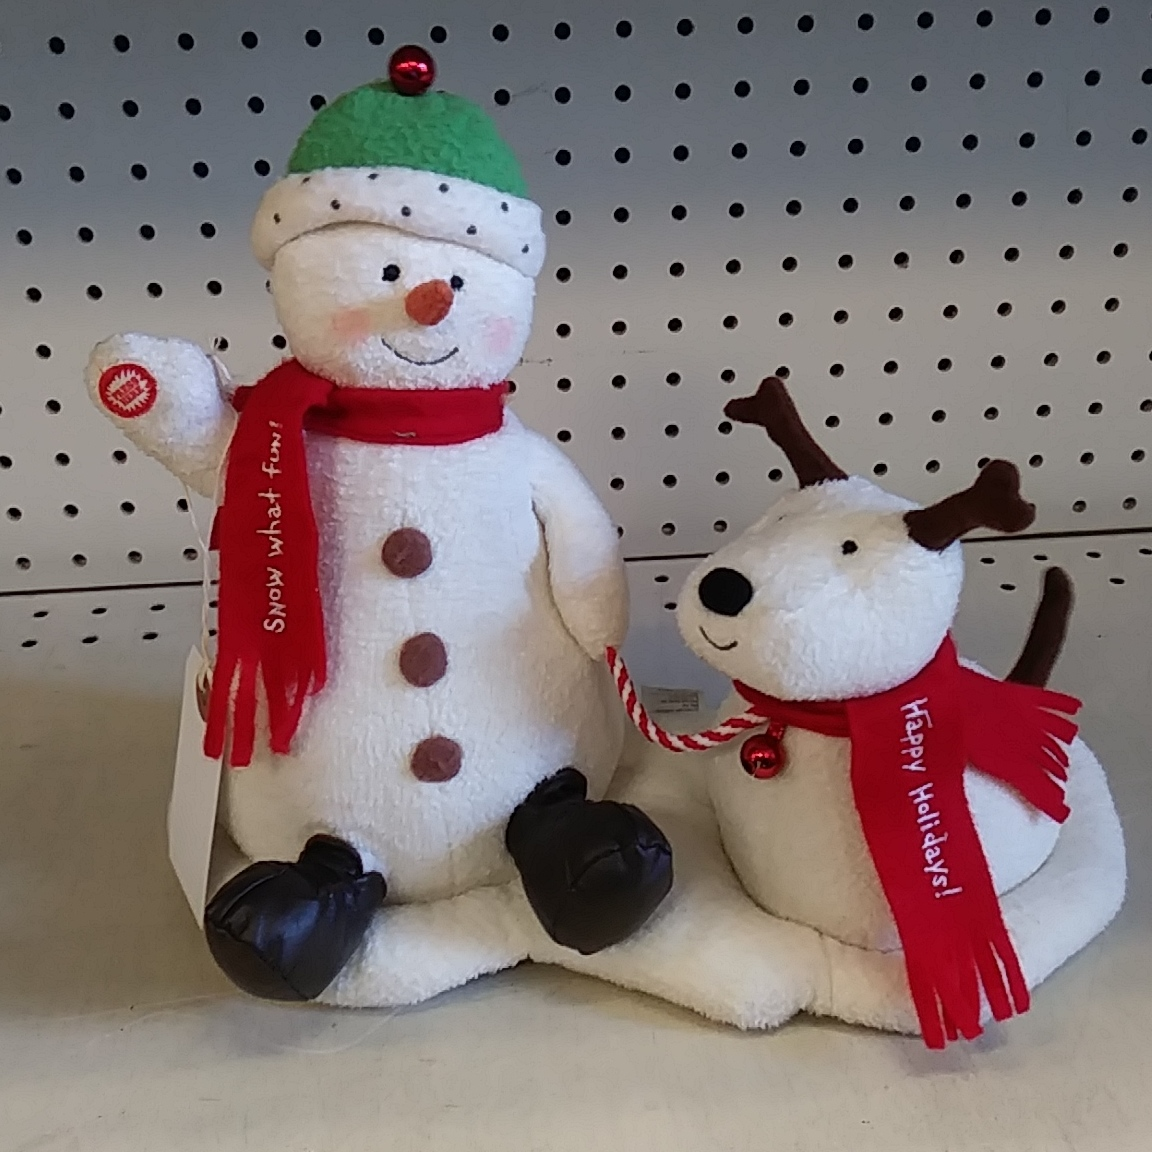 HALLMARK STUFFED CHRISTMAS FIGURES PLAYS MUSIC